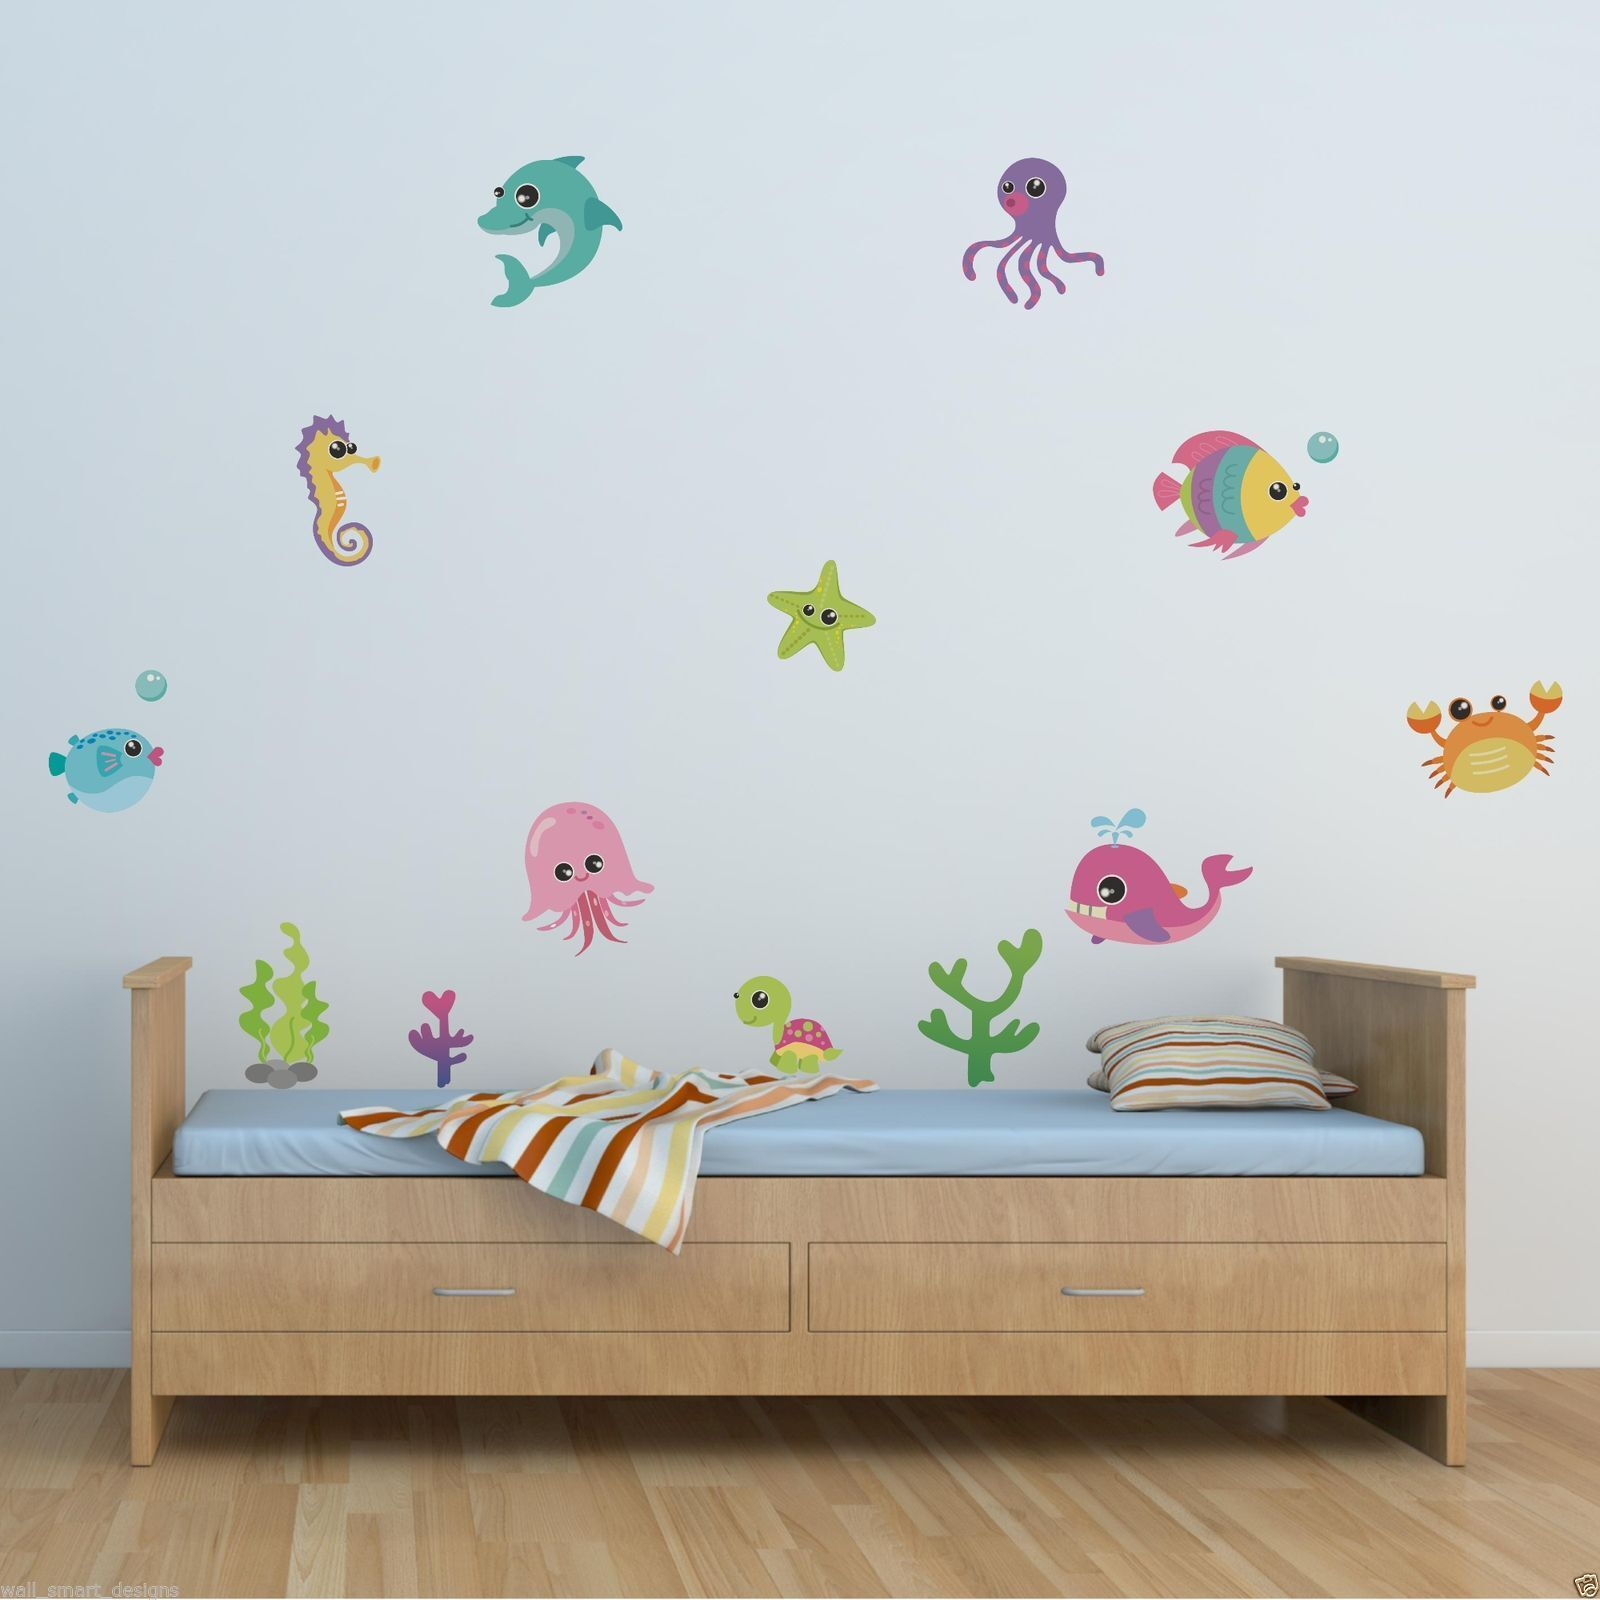 Wall decals stickers home decor home furniture diy full colour sea creatures animals wall sticker girls boys bedroom decal mural amipublicfo Gallery